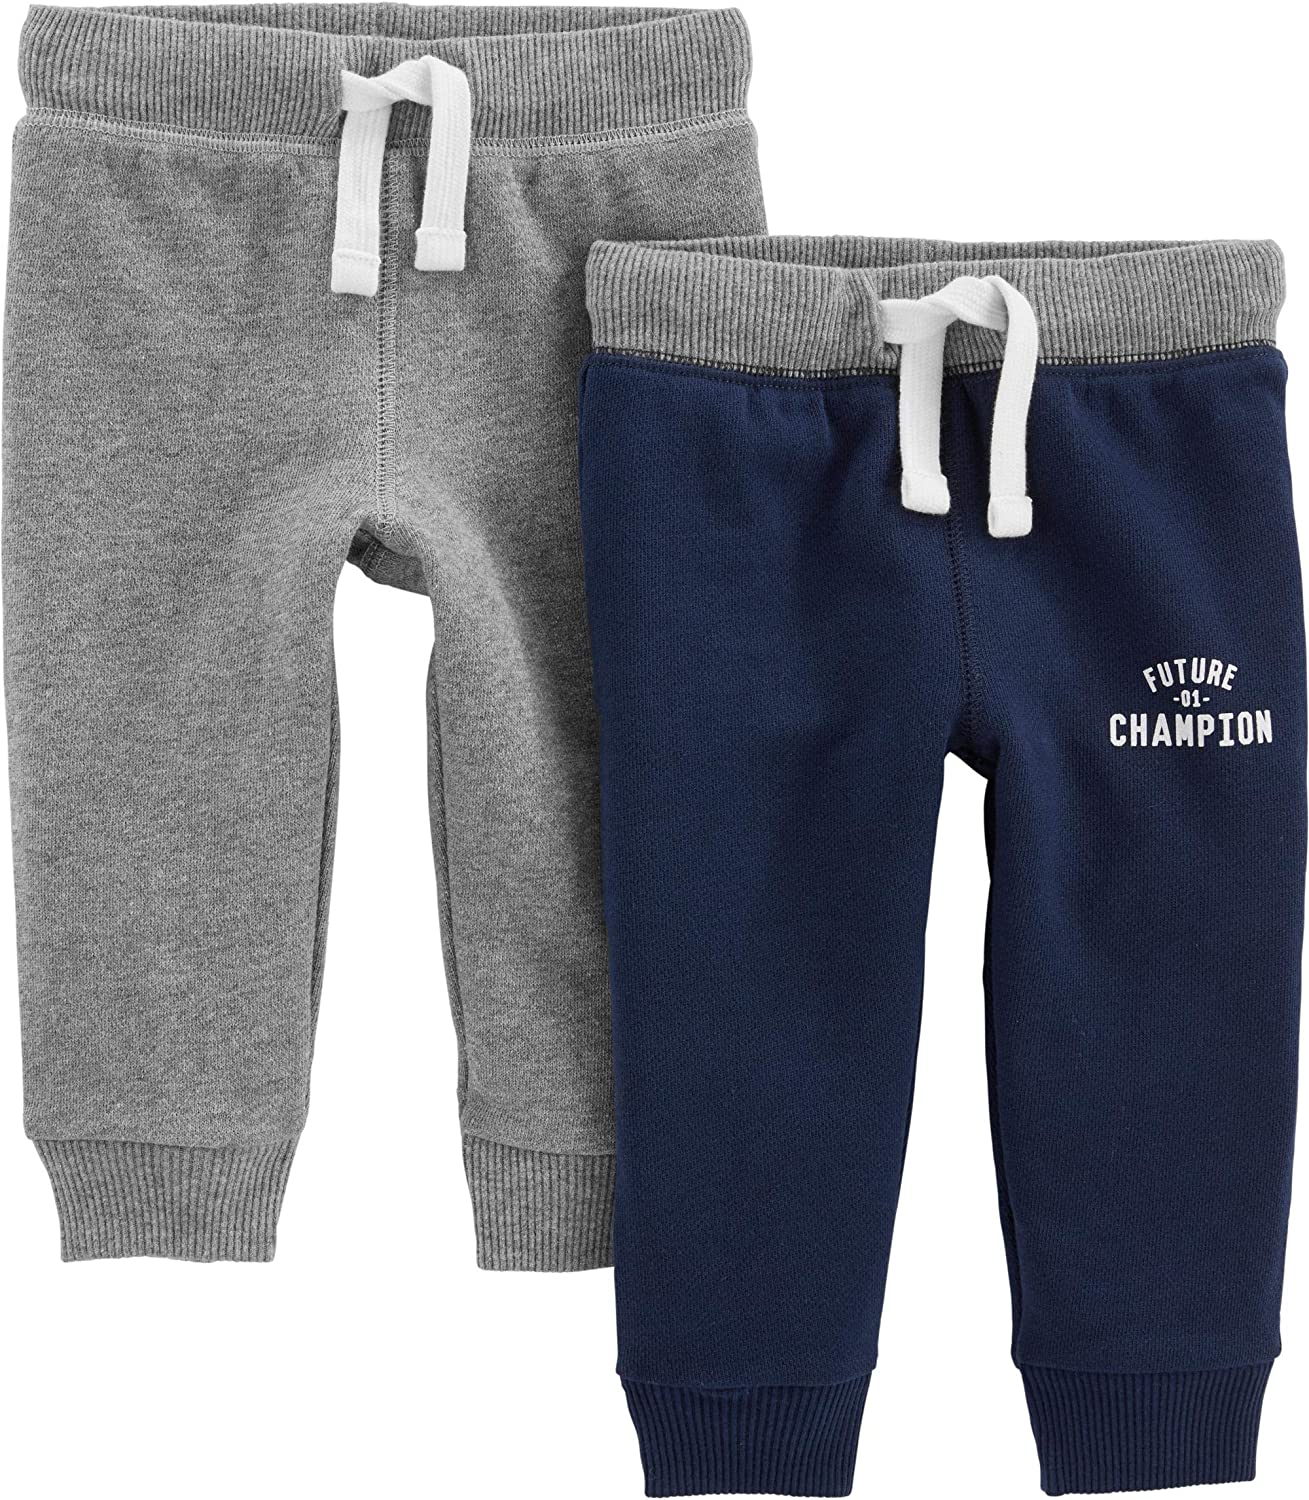 Simple Joys by Carters Baby and Toddler Boys 2-Pack Athletic Knit Jogger Pants